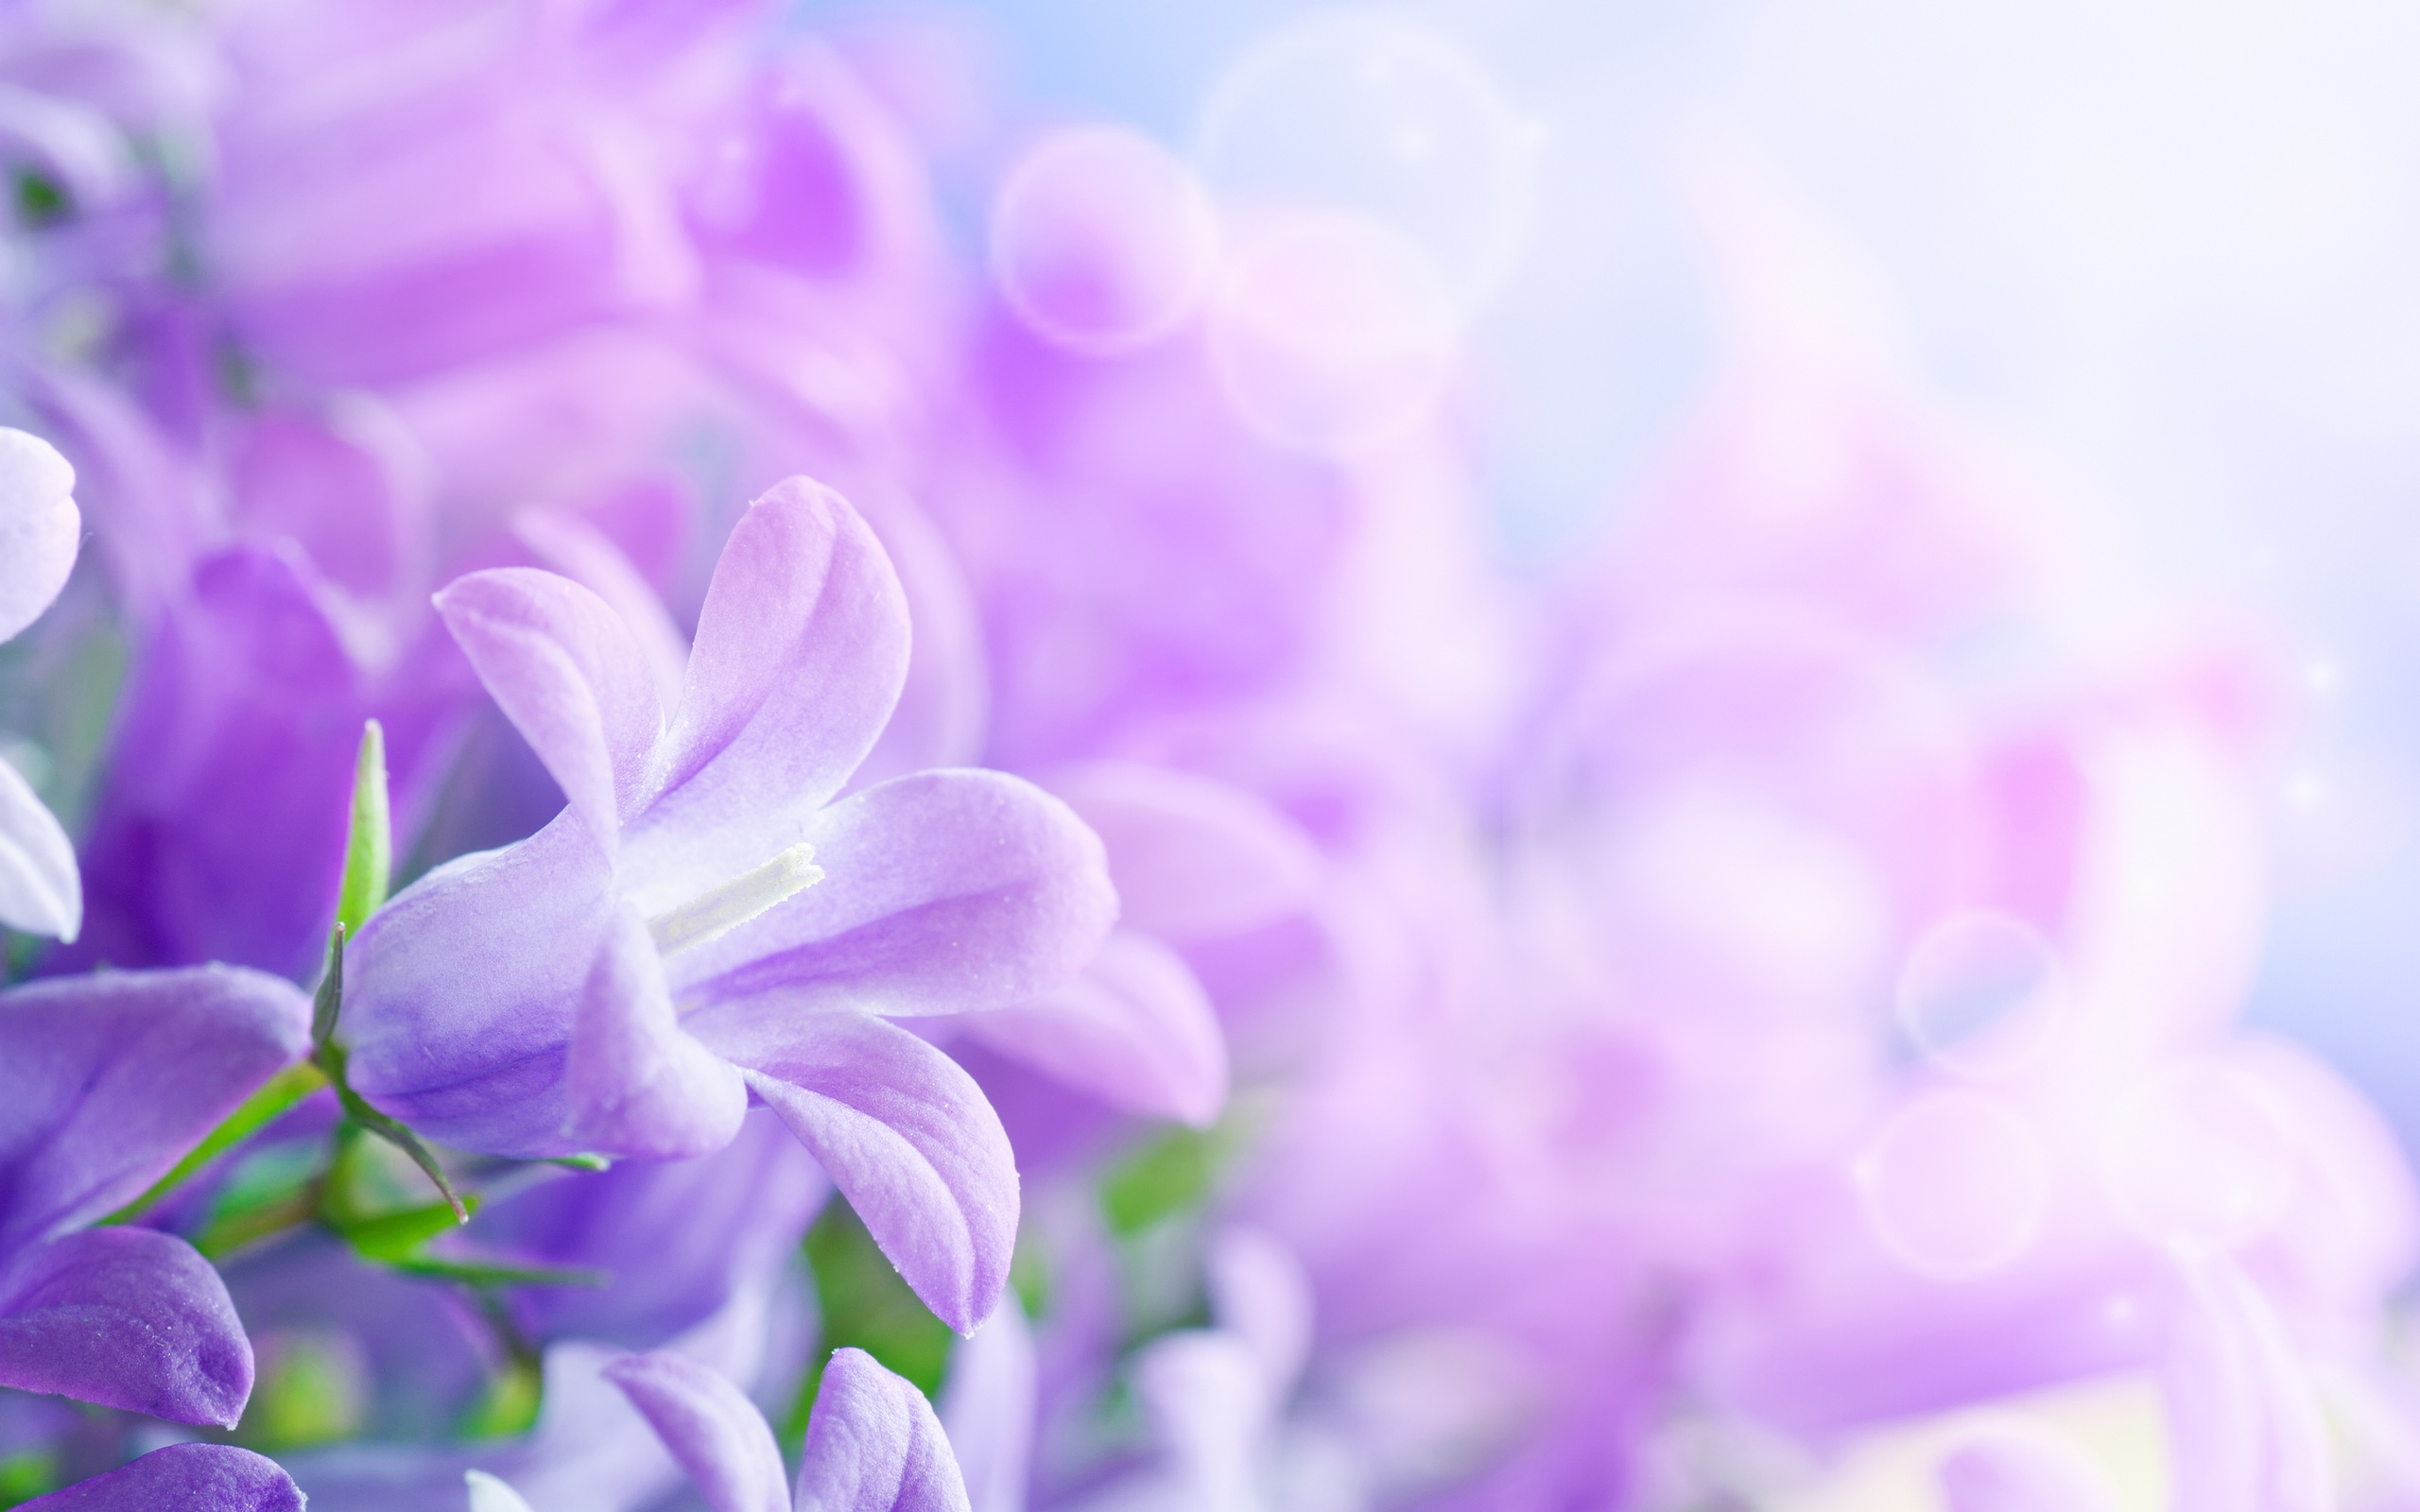 Purple Spring Flower Wallpapers   2560x1600   597561 2560x1600